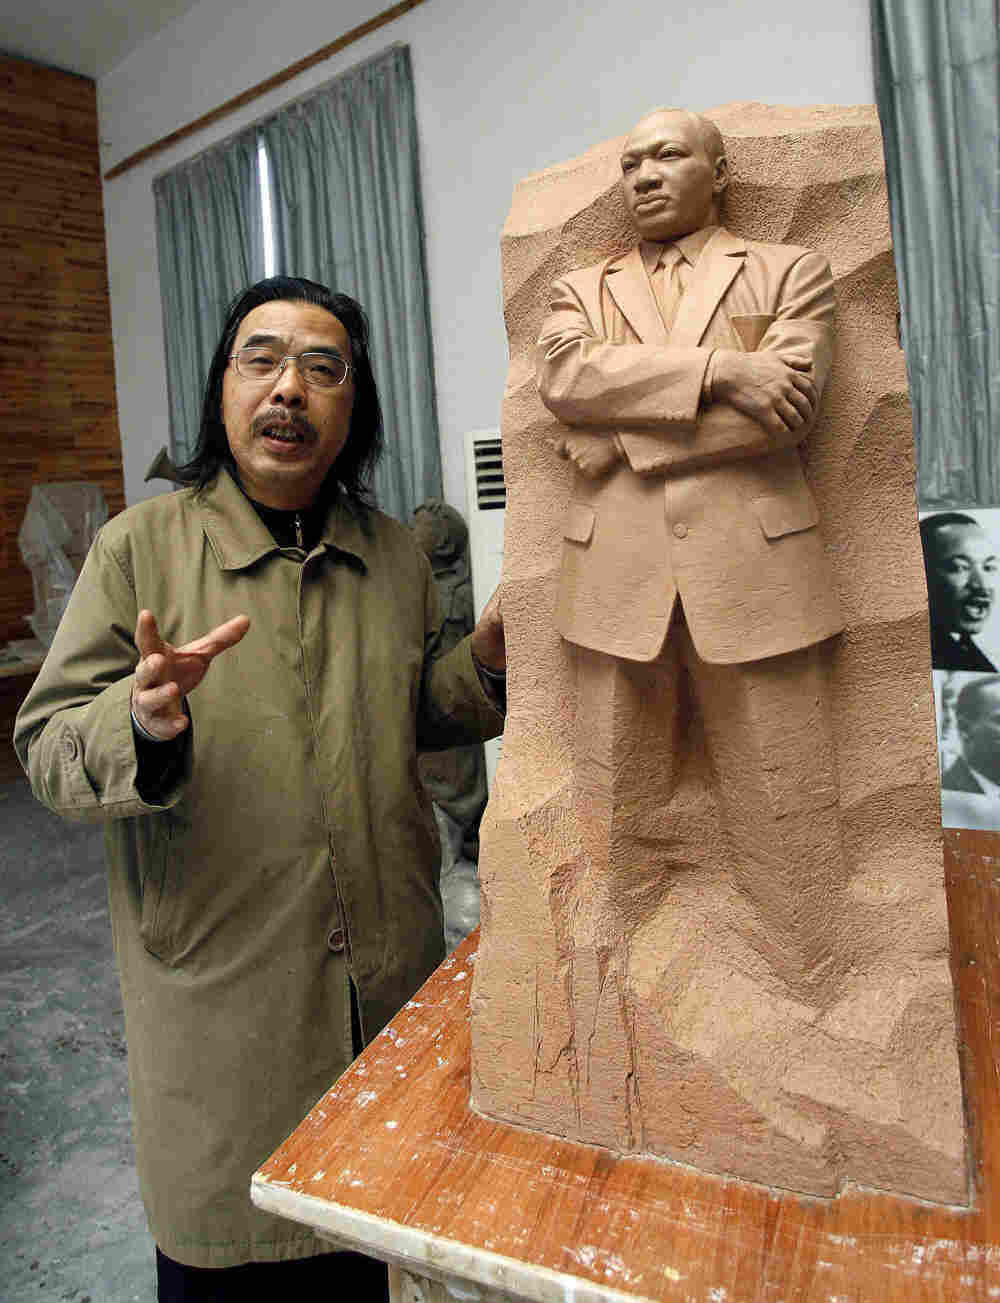 Martin Luther King sculpture destined for Washington, D.C. is stranded in China because of the Greek